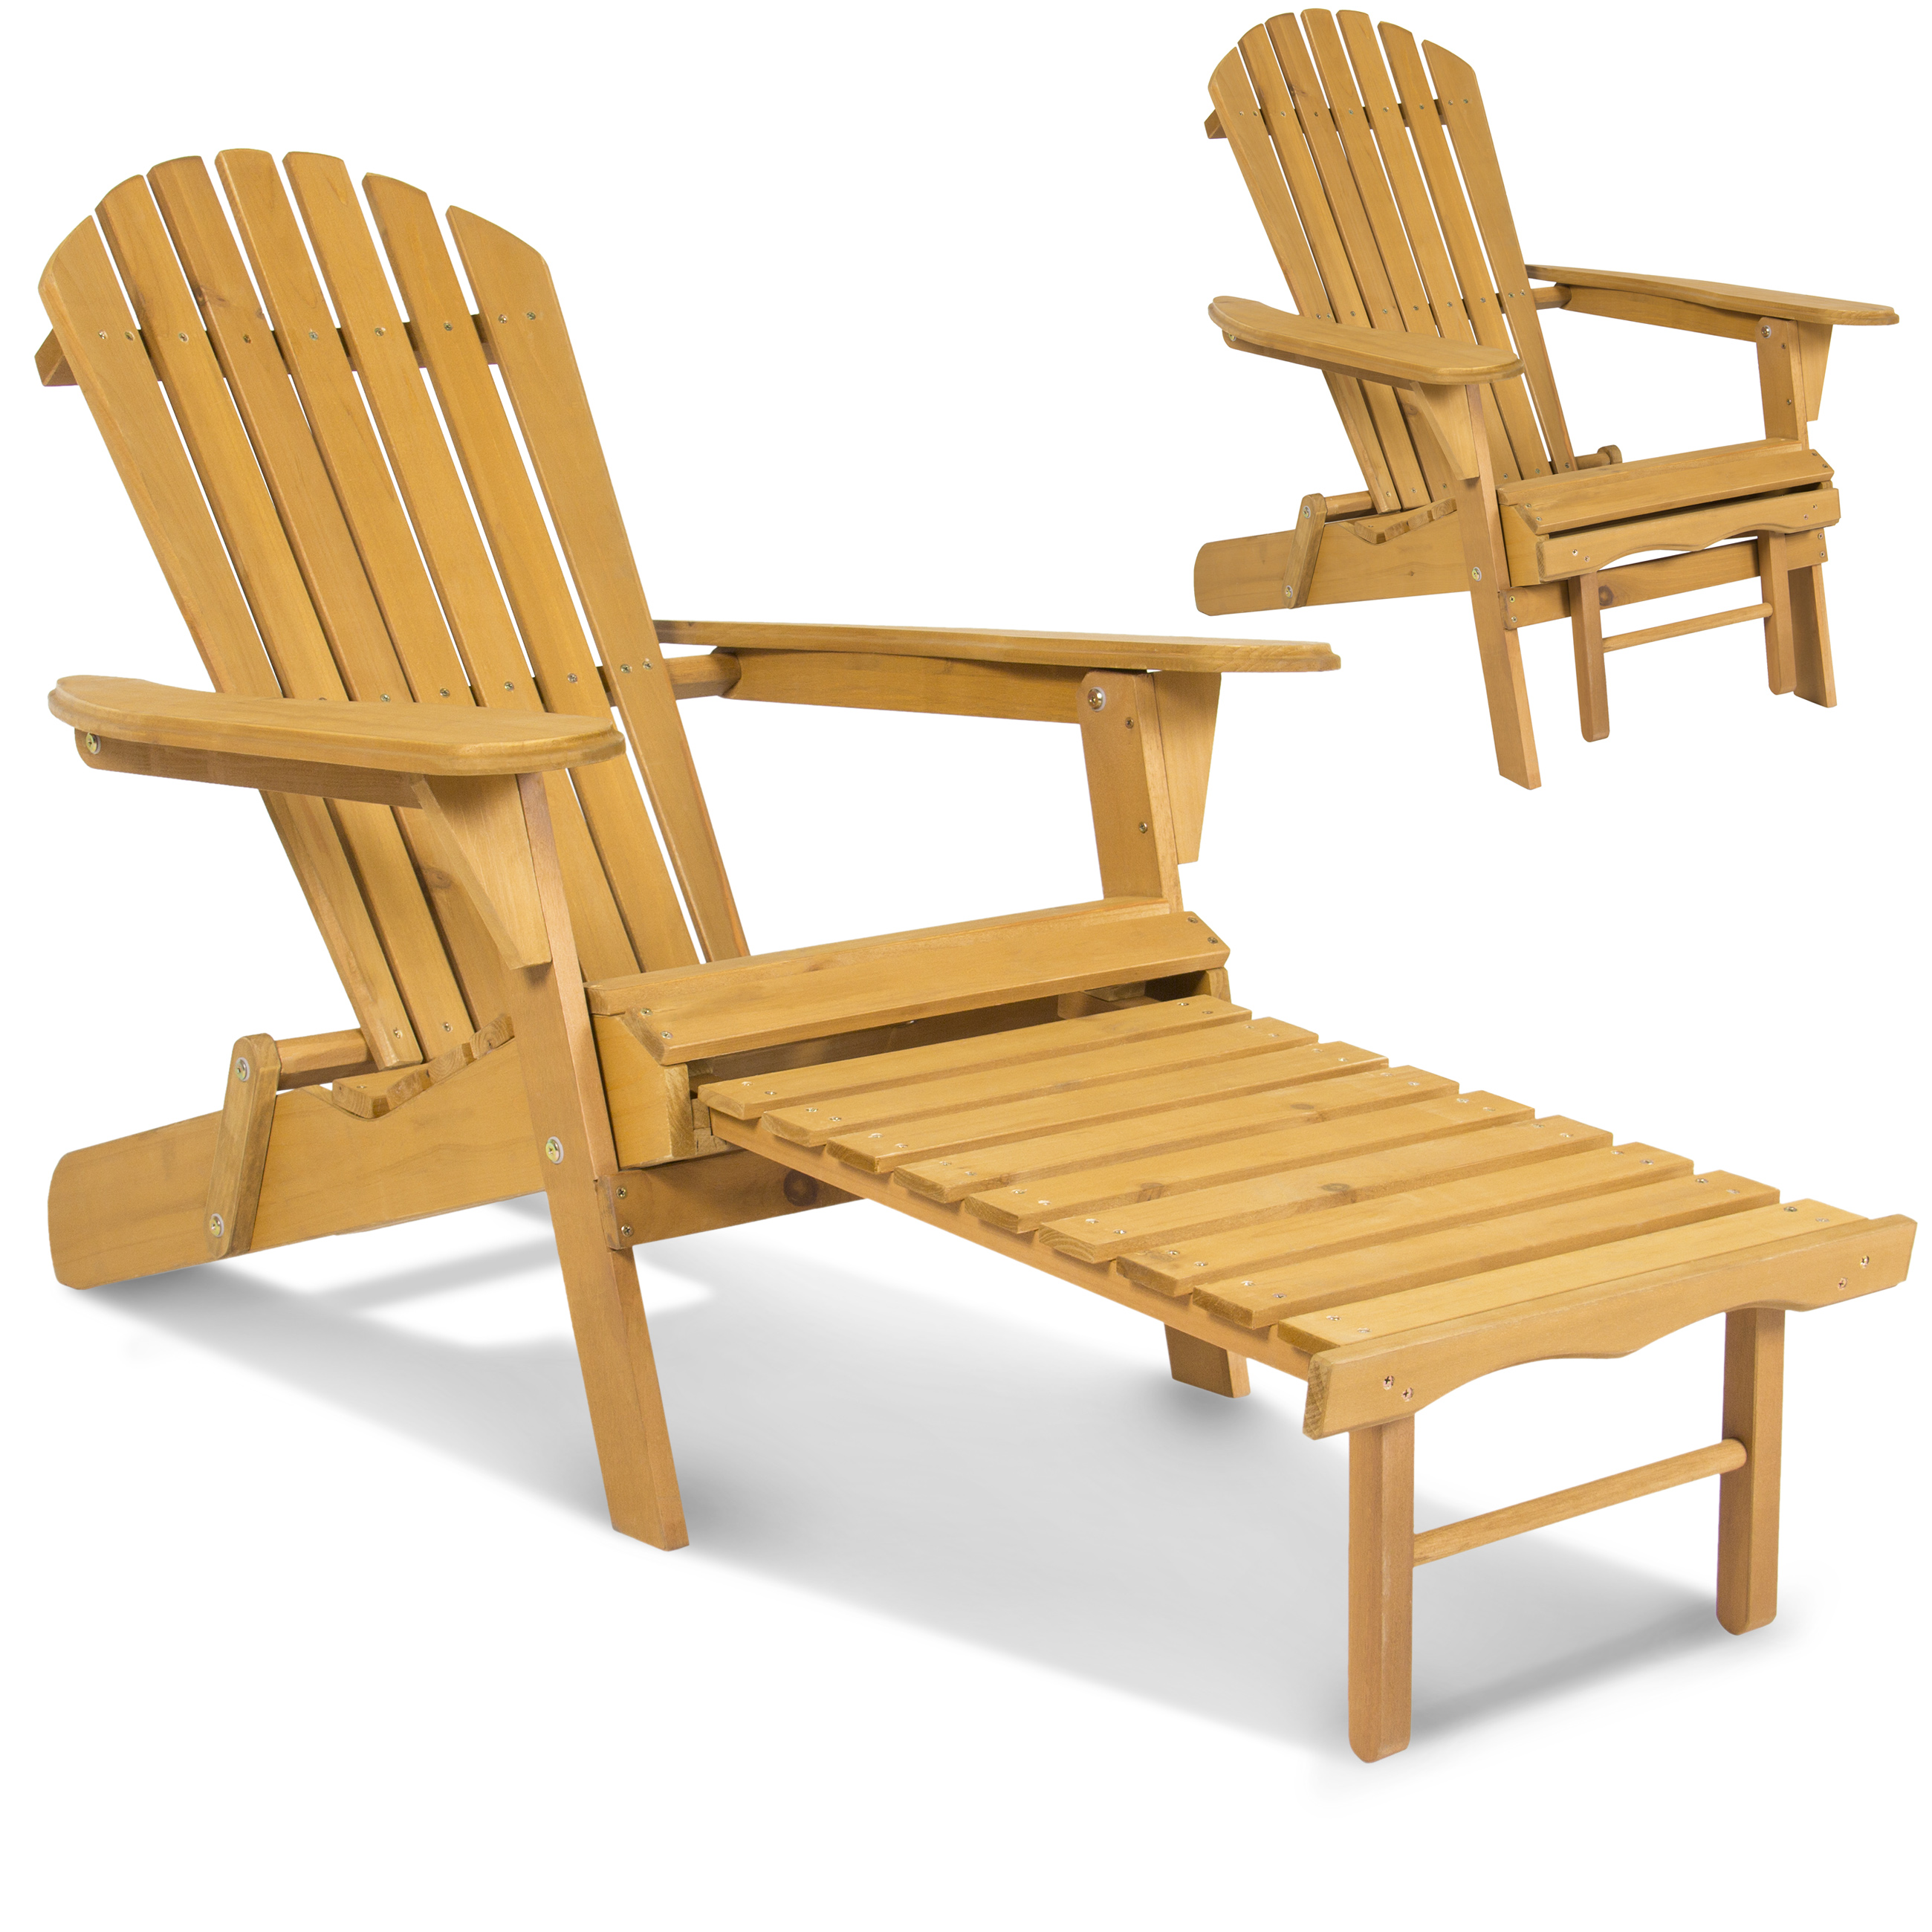 Best Choice Products Outdoor Wood Adirondack Chair Foldable W/ Pull Out  Ottoman Patio Deck Furniture